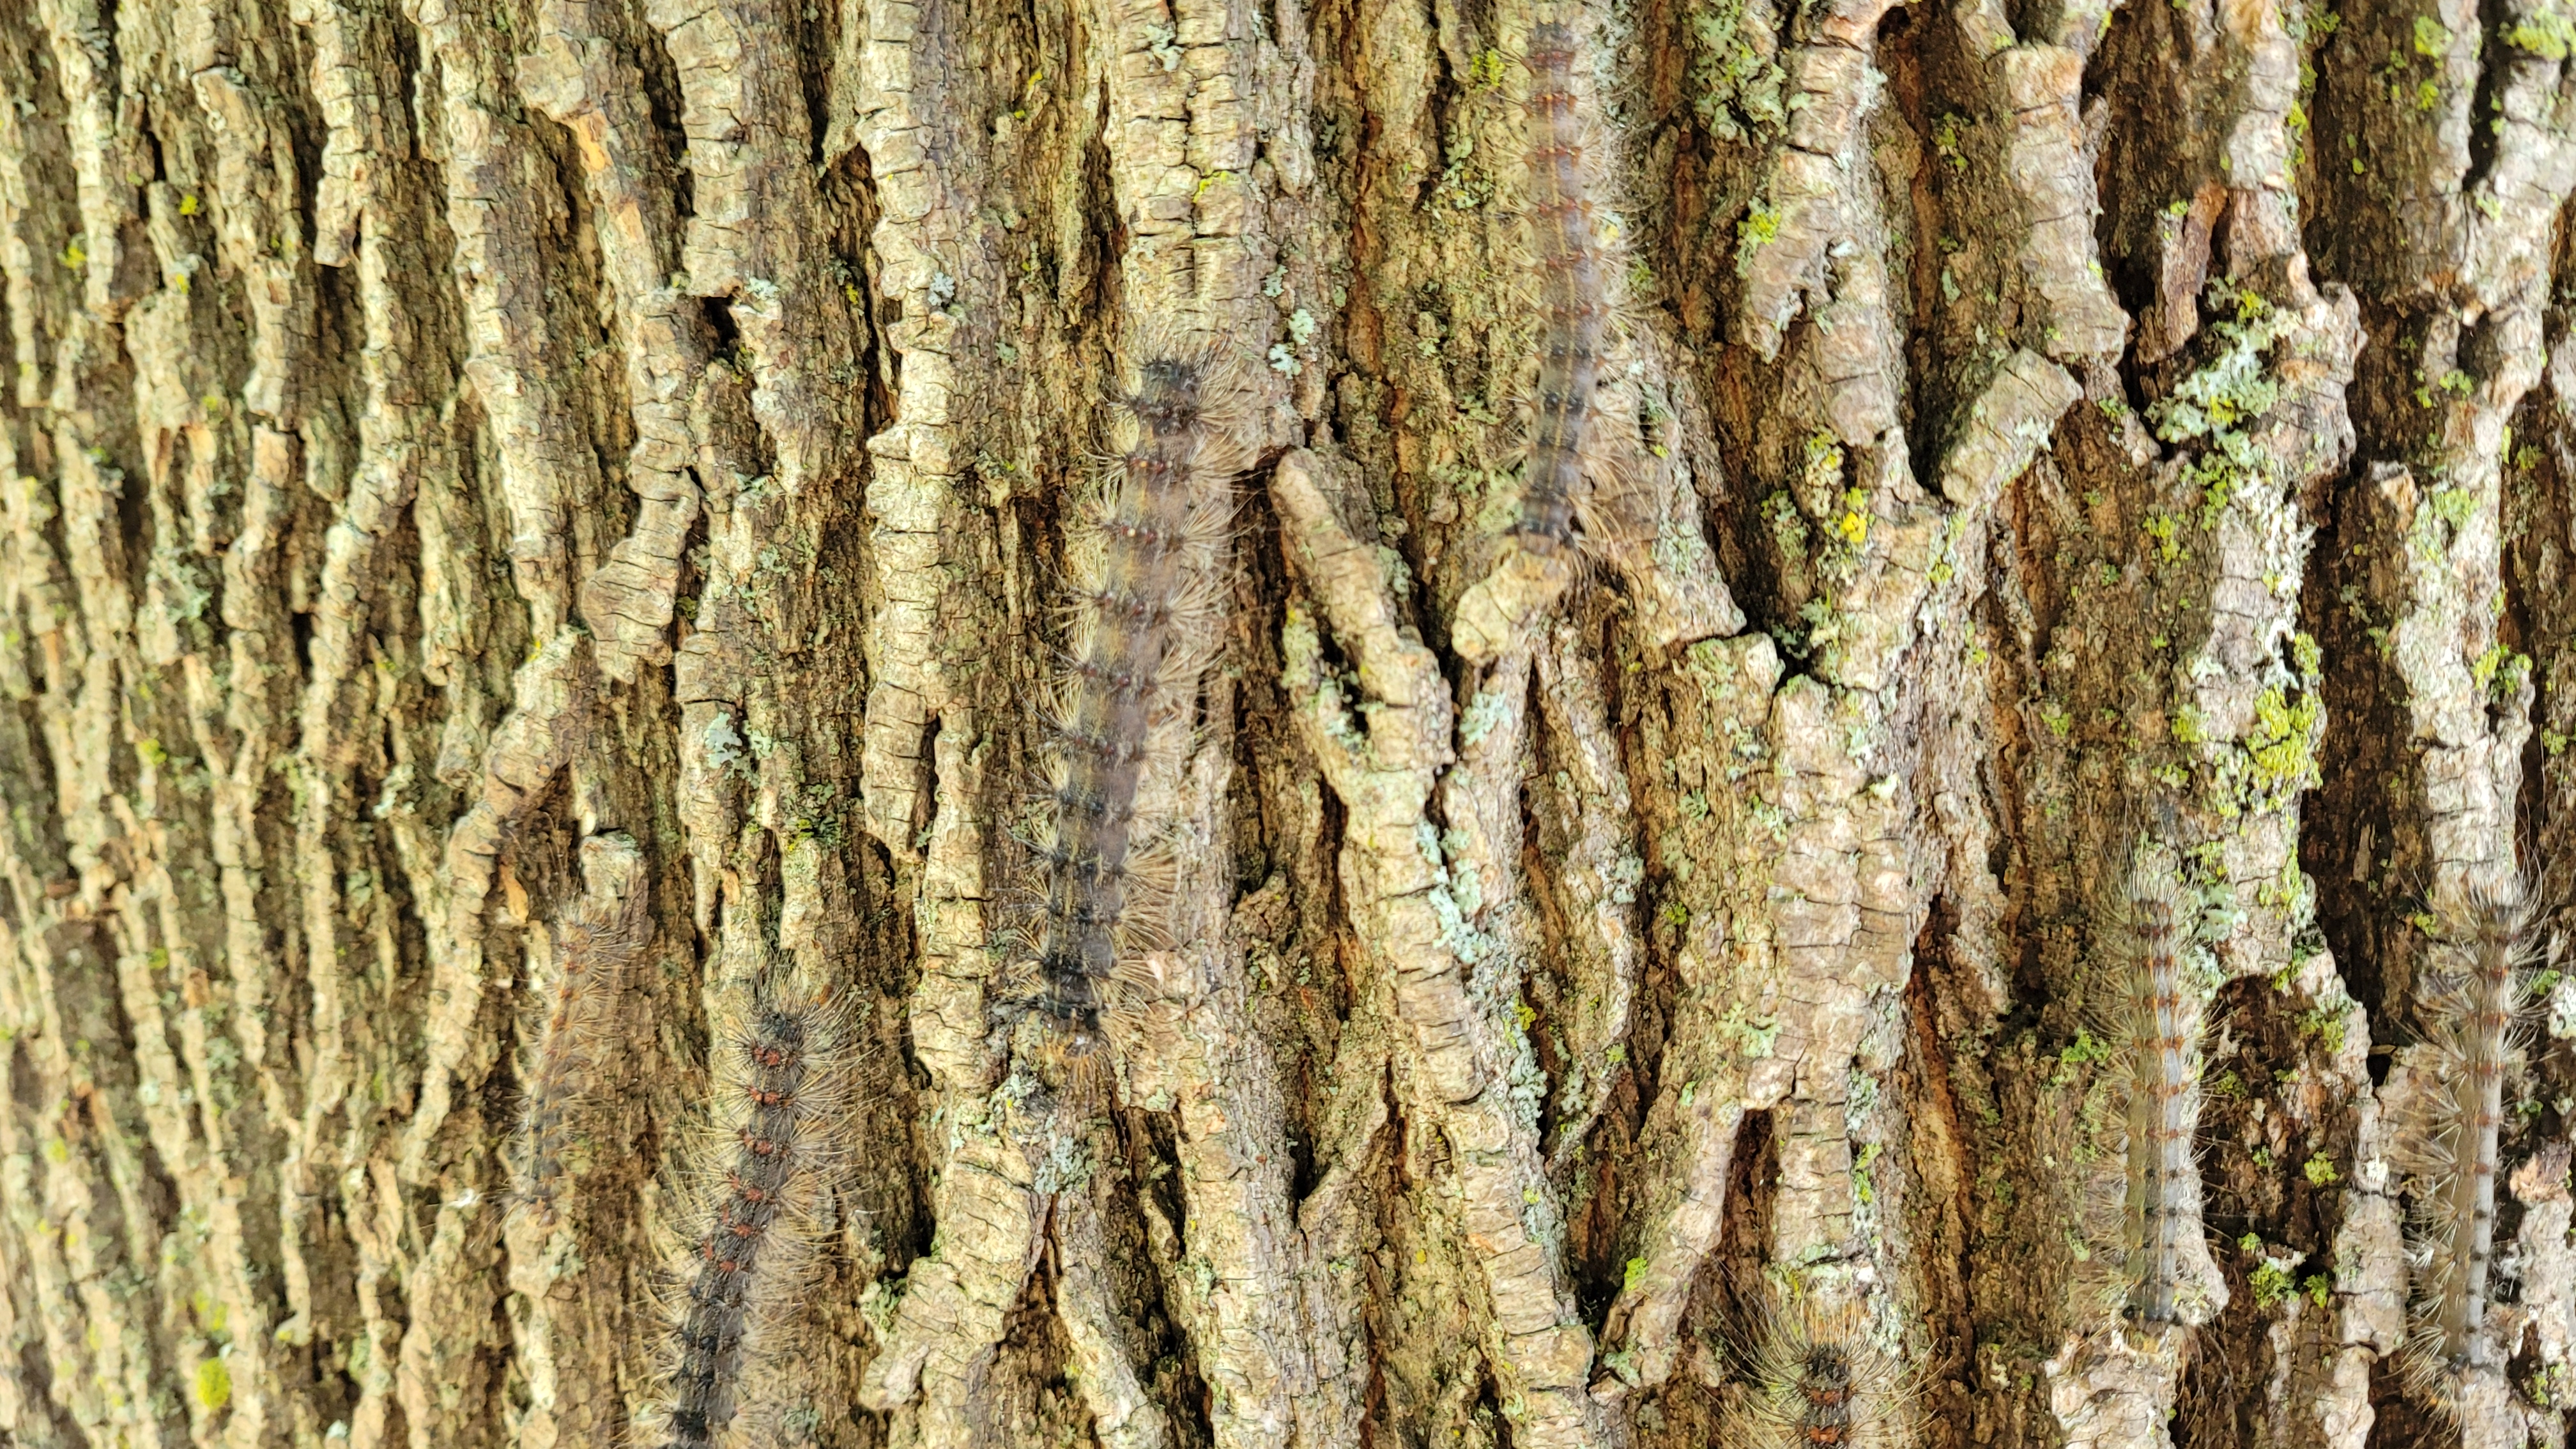 Several Gypsy Moth caterpillars make their way up a maple tree.